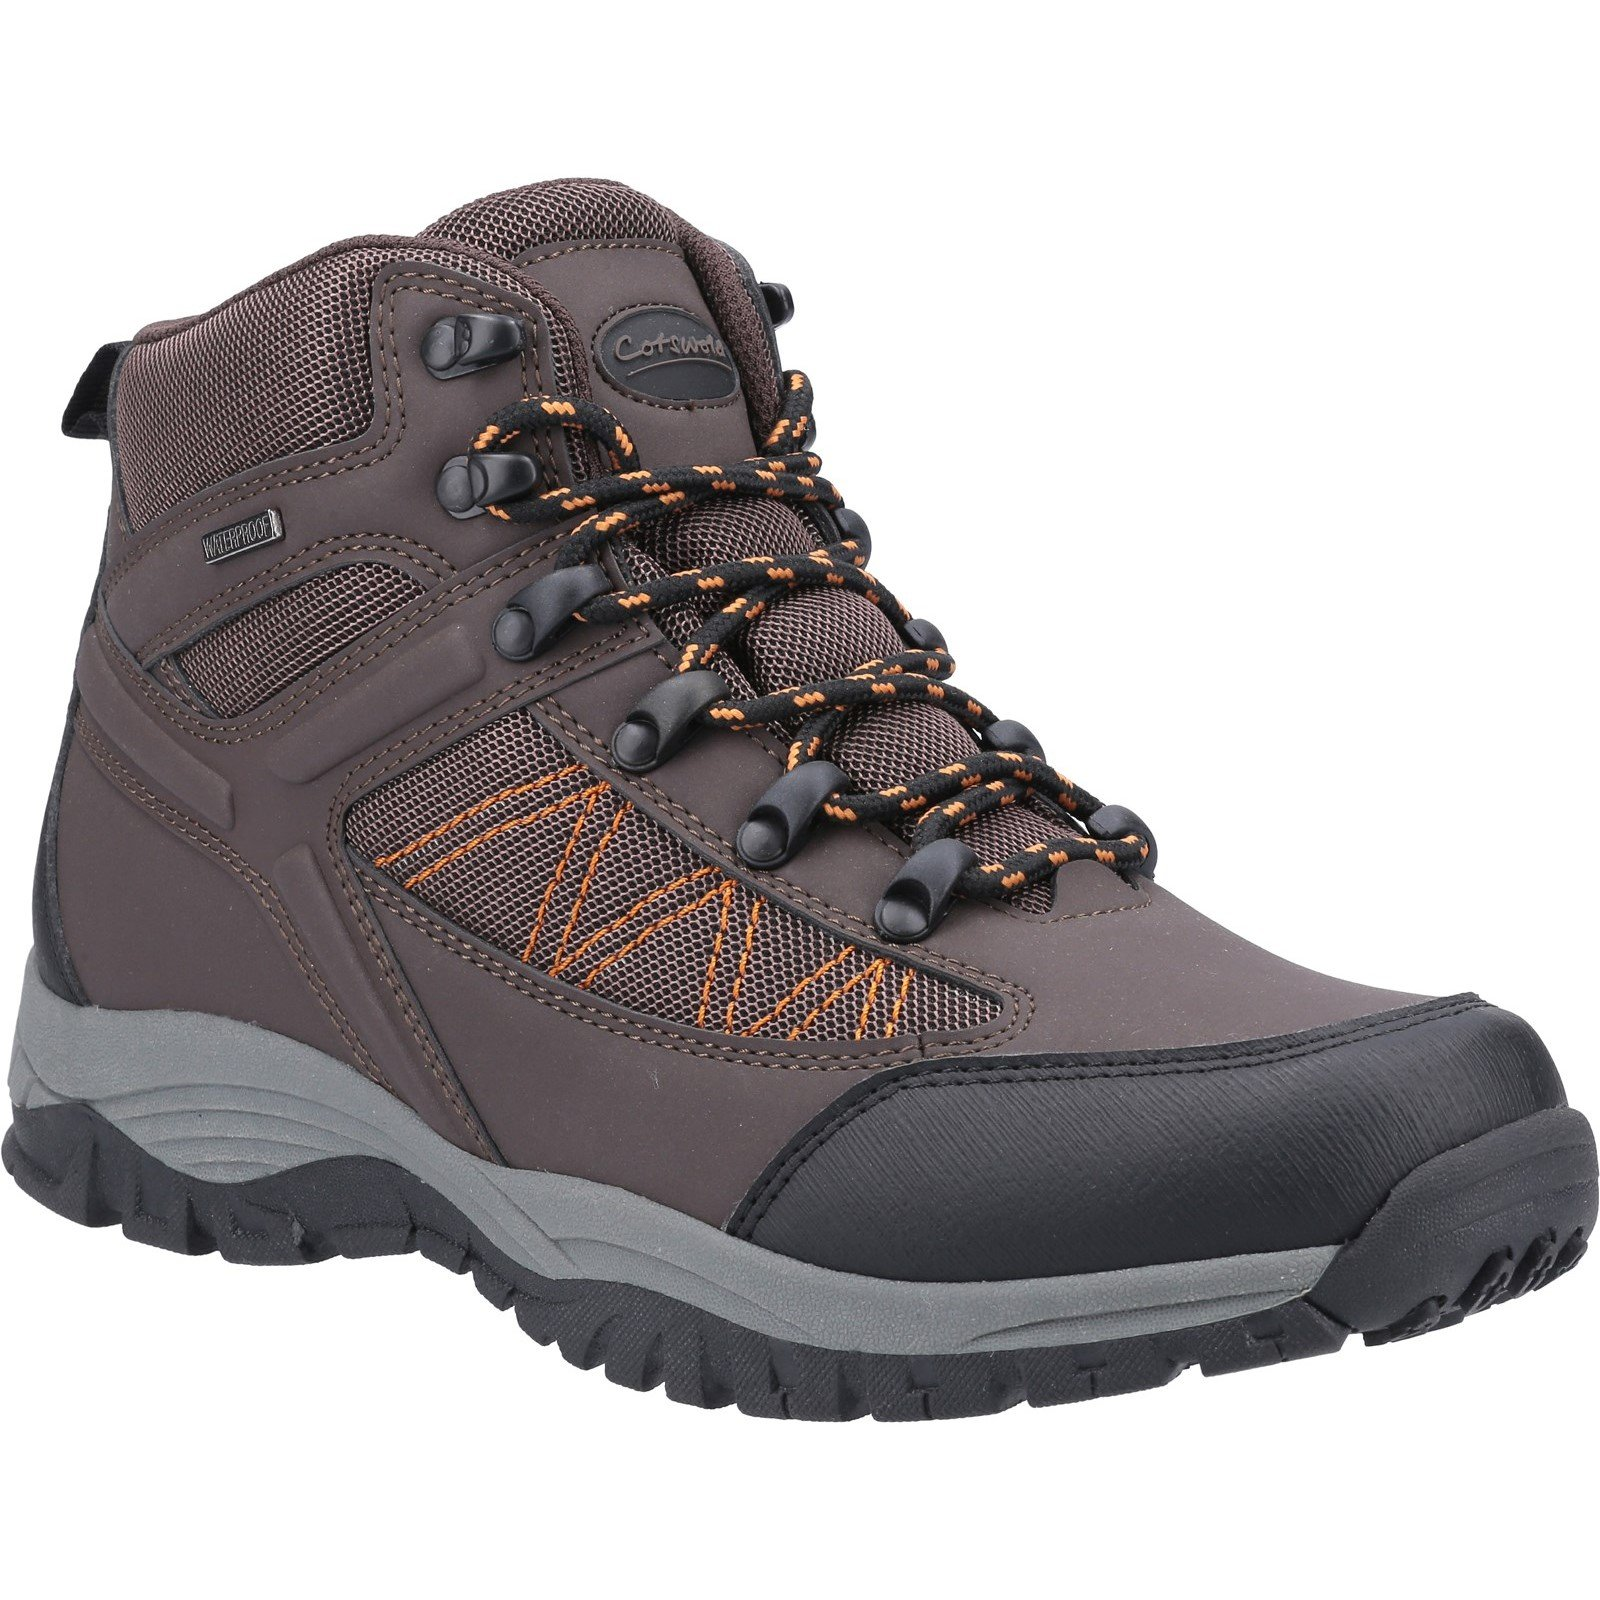 Cotswold Men's Maisemore Hiking Boot Brown 32985 - Brown 12